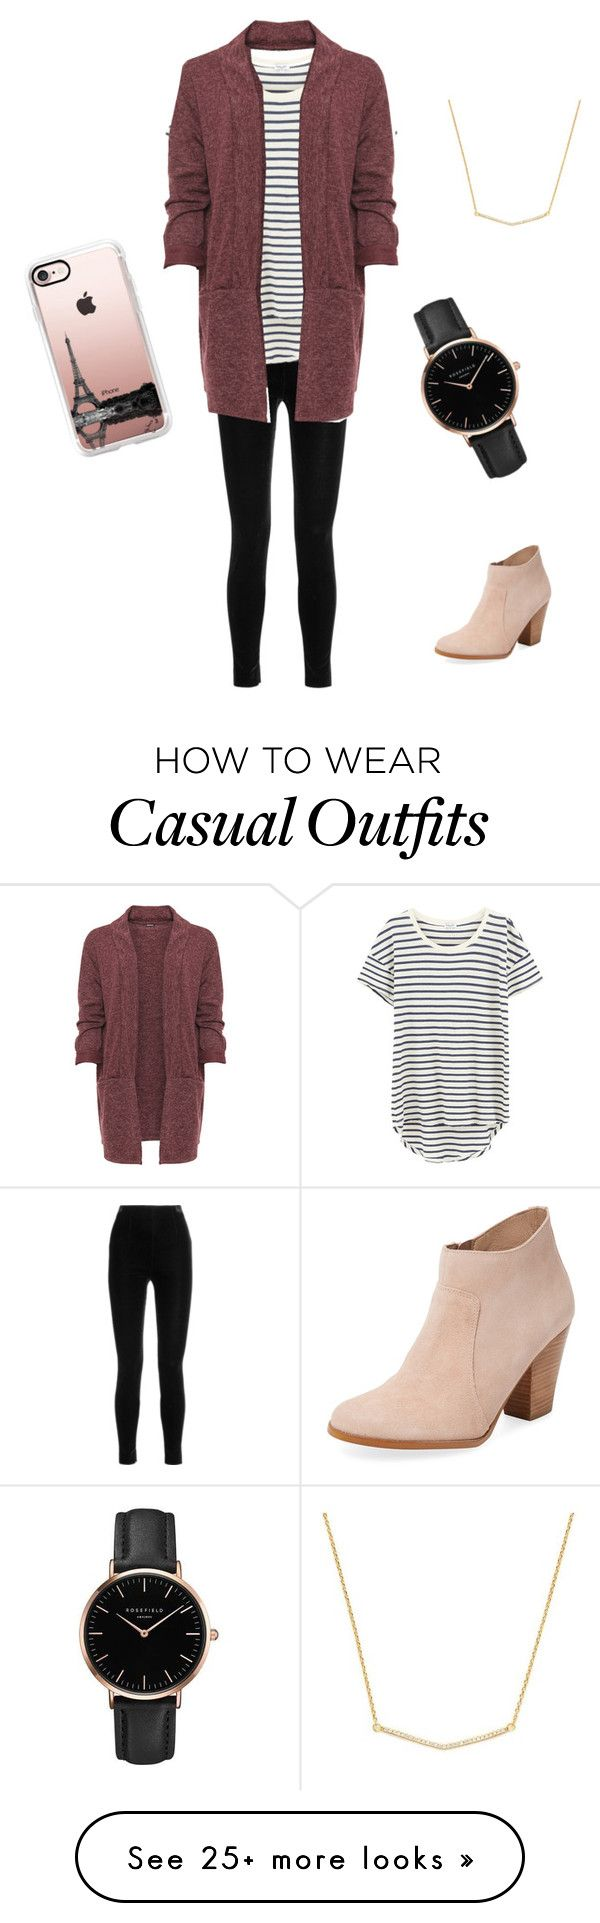 """Casual Perfected"" by c-gull92 on Polyvore featuring Balmain, Splendid, WearAll, Maiden Lane, Topshop and Casetify"